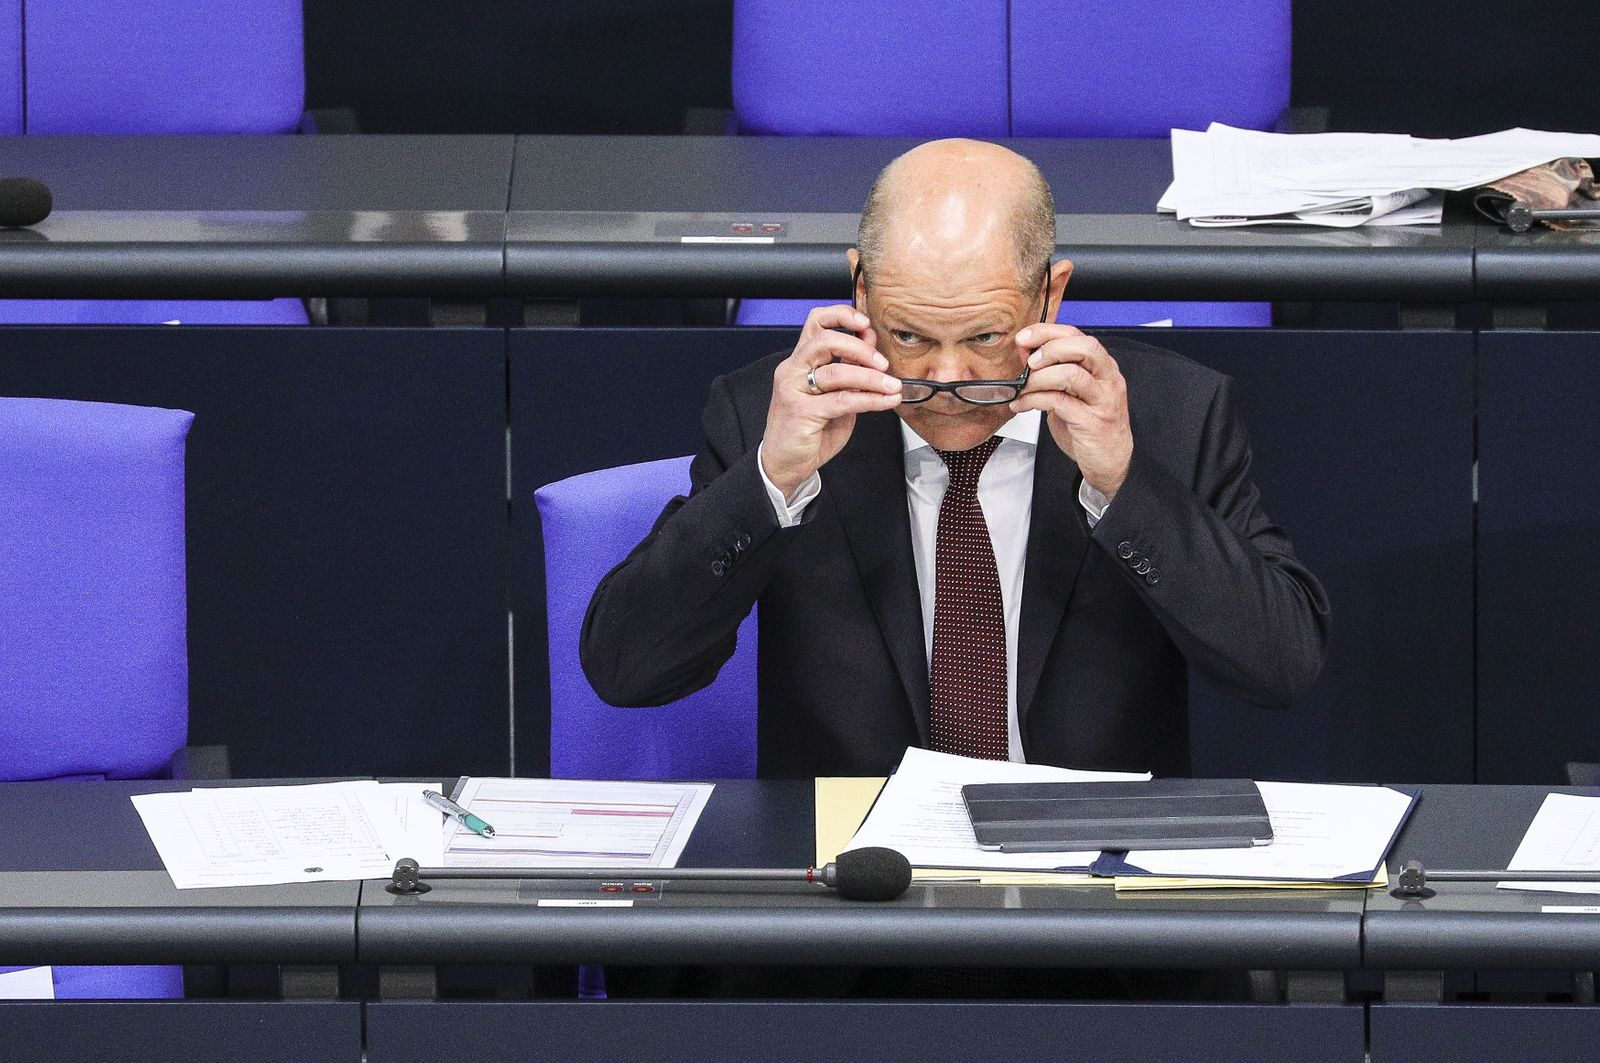 Bundestag session - European Core Values initiative, Berlin, Germany - 14 May 2020